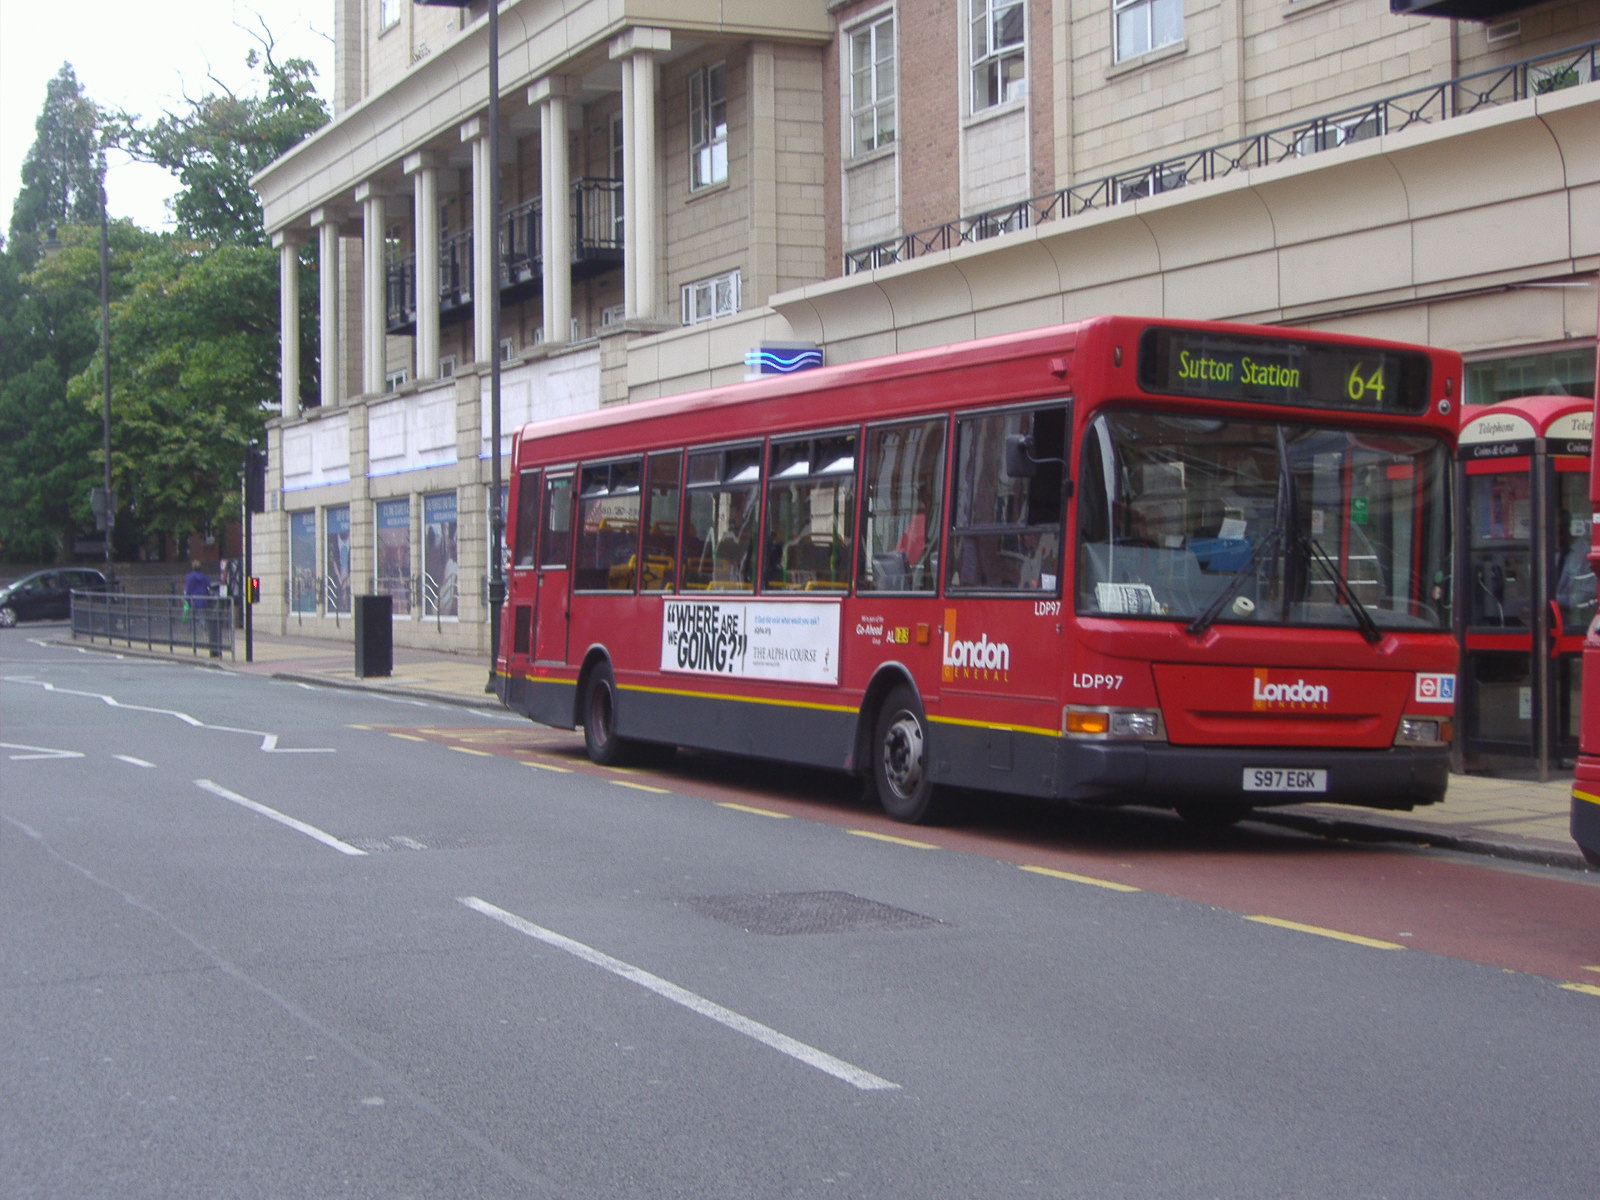 file:london buses route 164 wimbledon - wikimedia commons